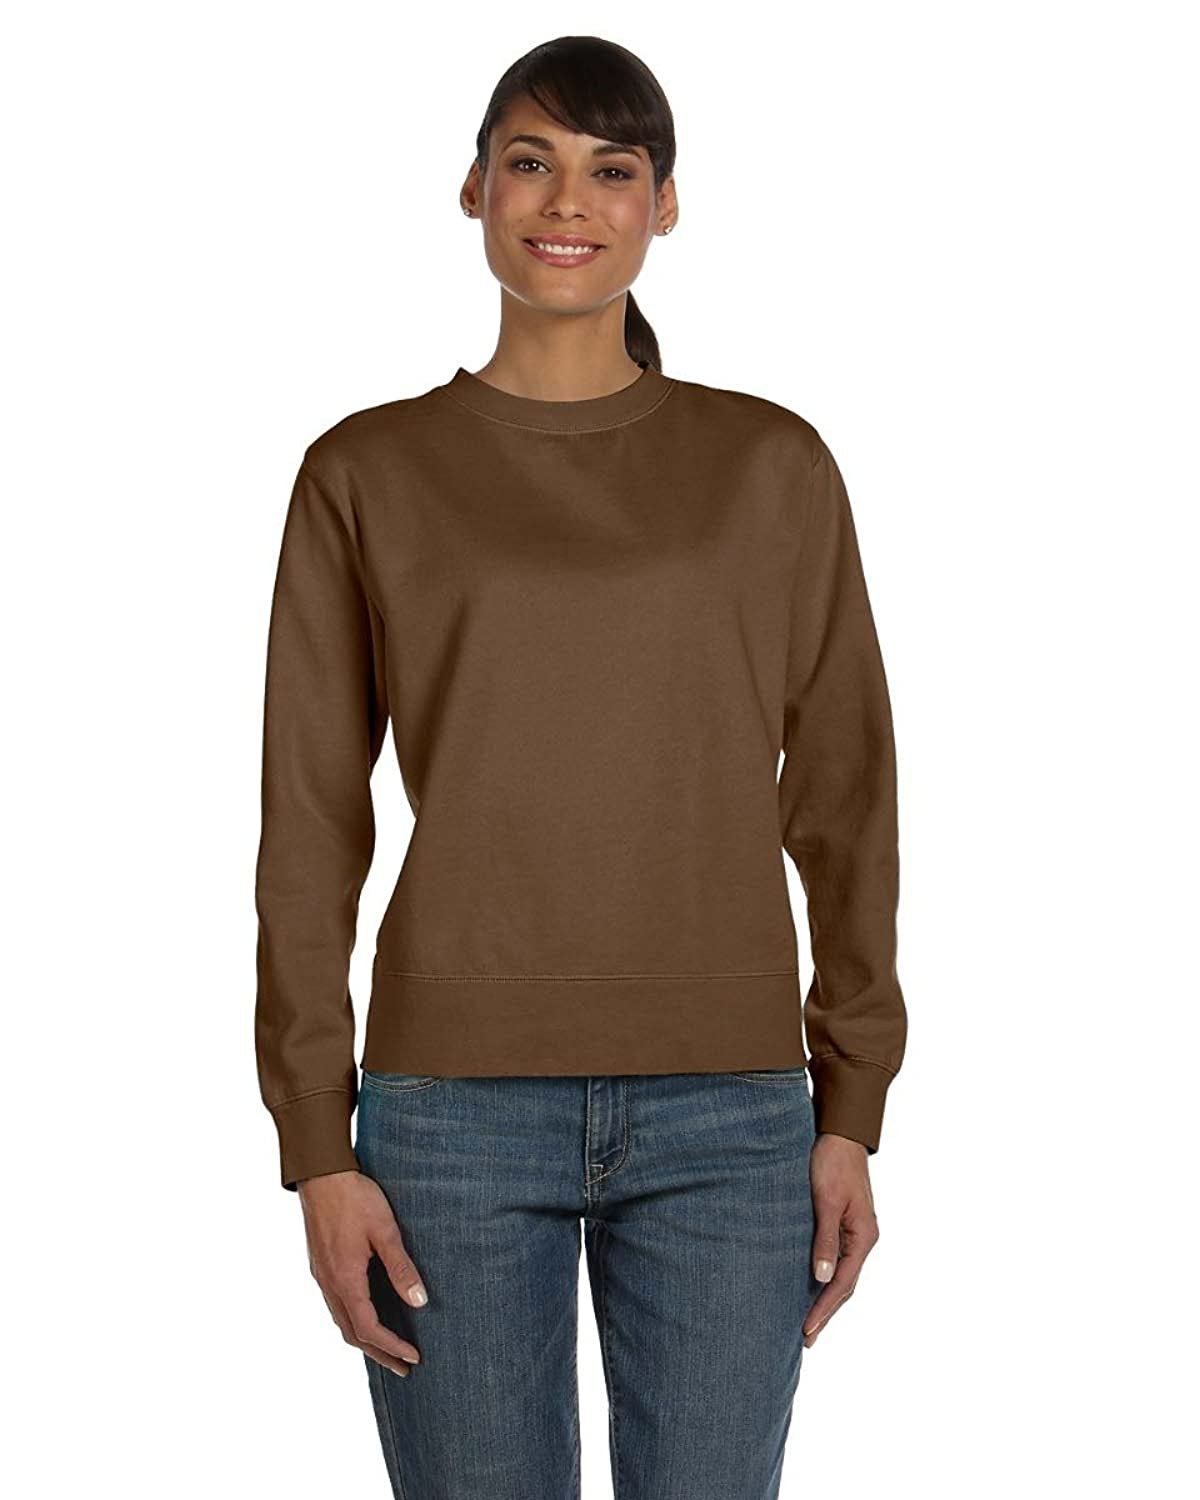 Comfort Colors Ladies' 10 Oz. Garment-dyed Wide-band Fleece Crew - Brown - 2xl